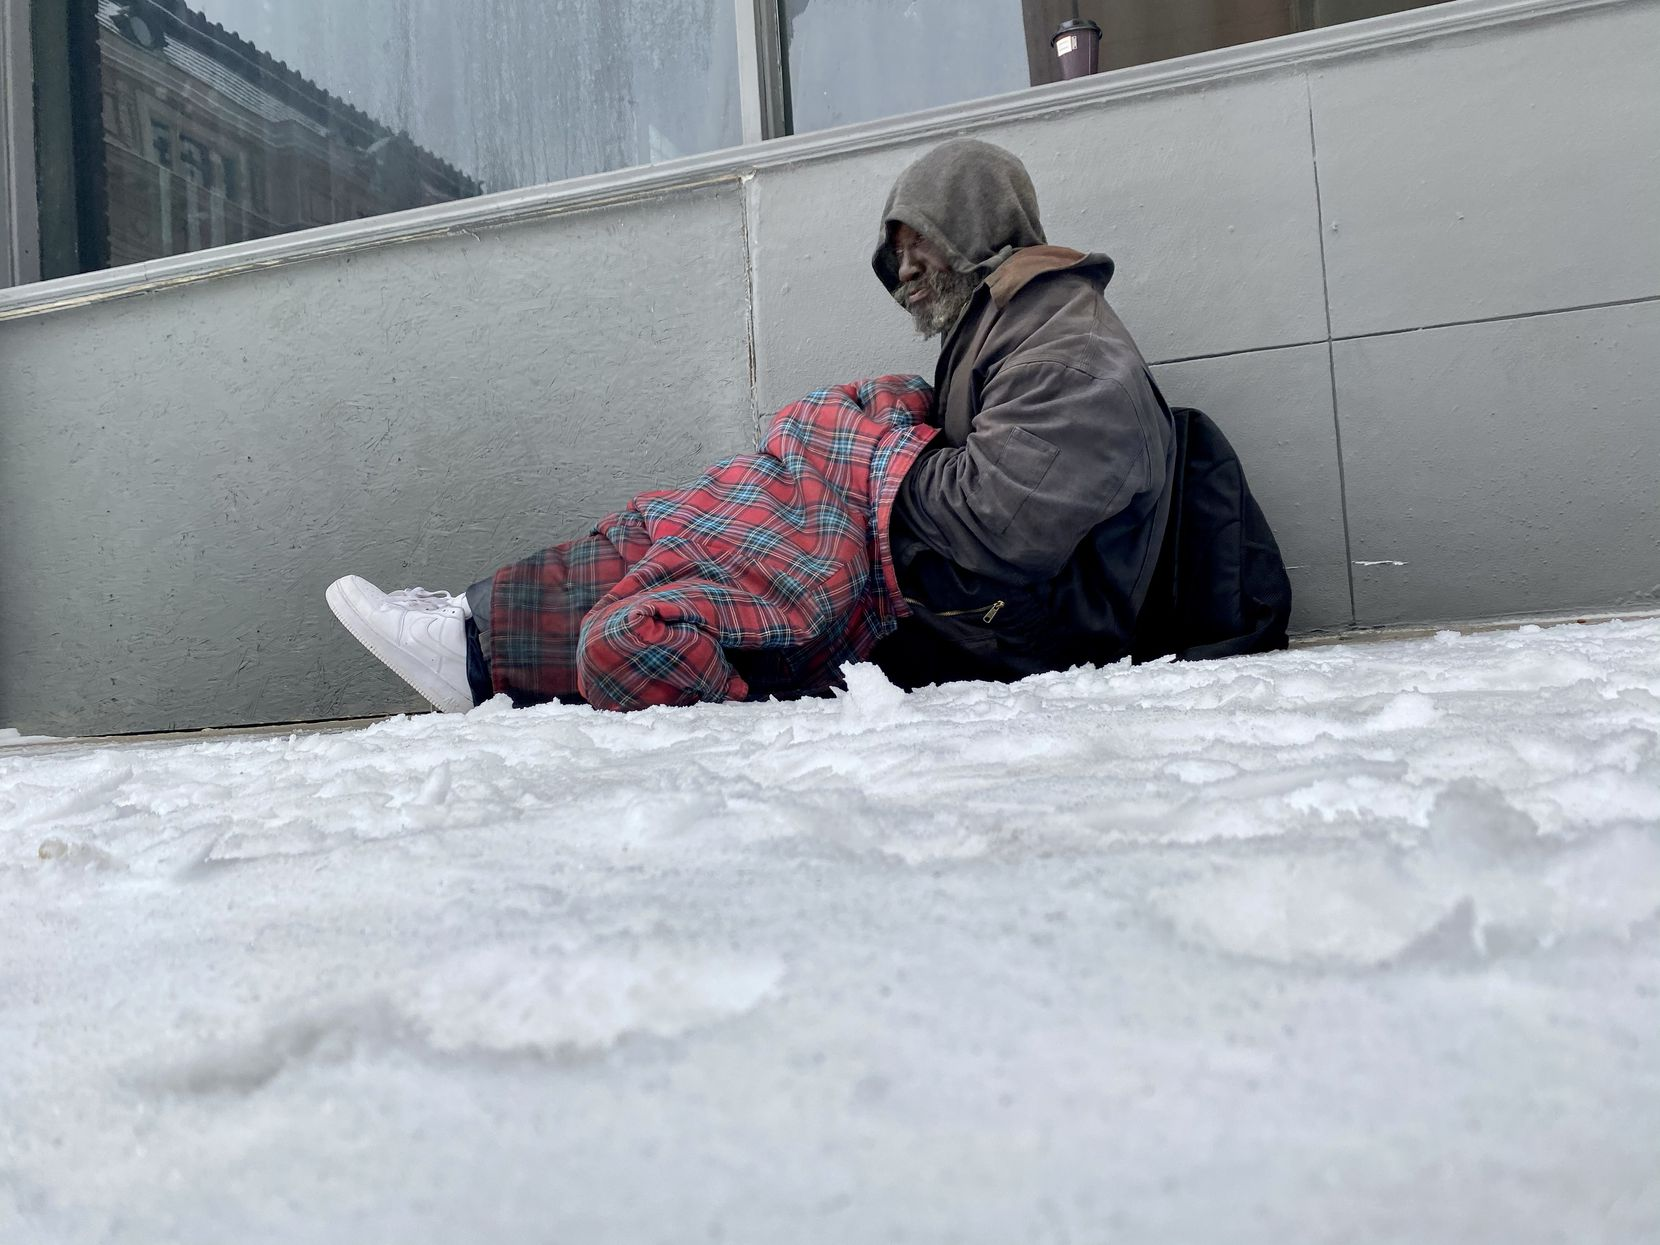 Darryl Davis sits on a grate to keep warm on Main Street early Wednesday morning February 17, 2021, in Dallas, Texas. He said he didn't want to go to the warming center at Kay Bailey Hutchison Convention Center.